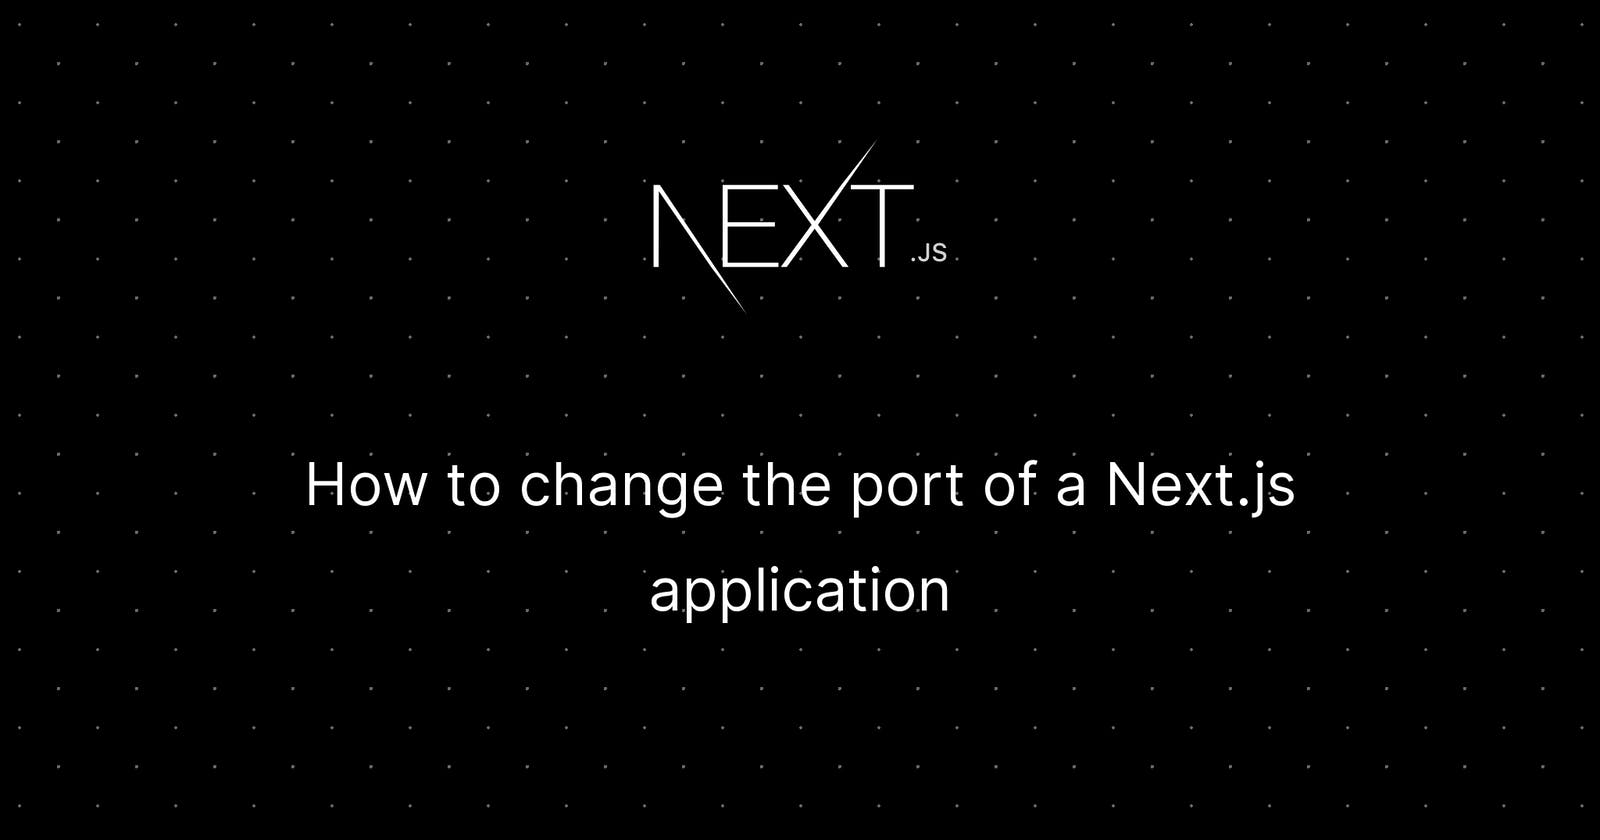 How to change the port of a Next.js application